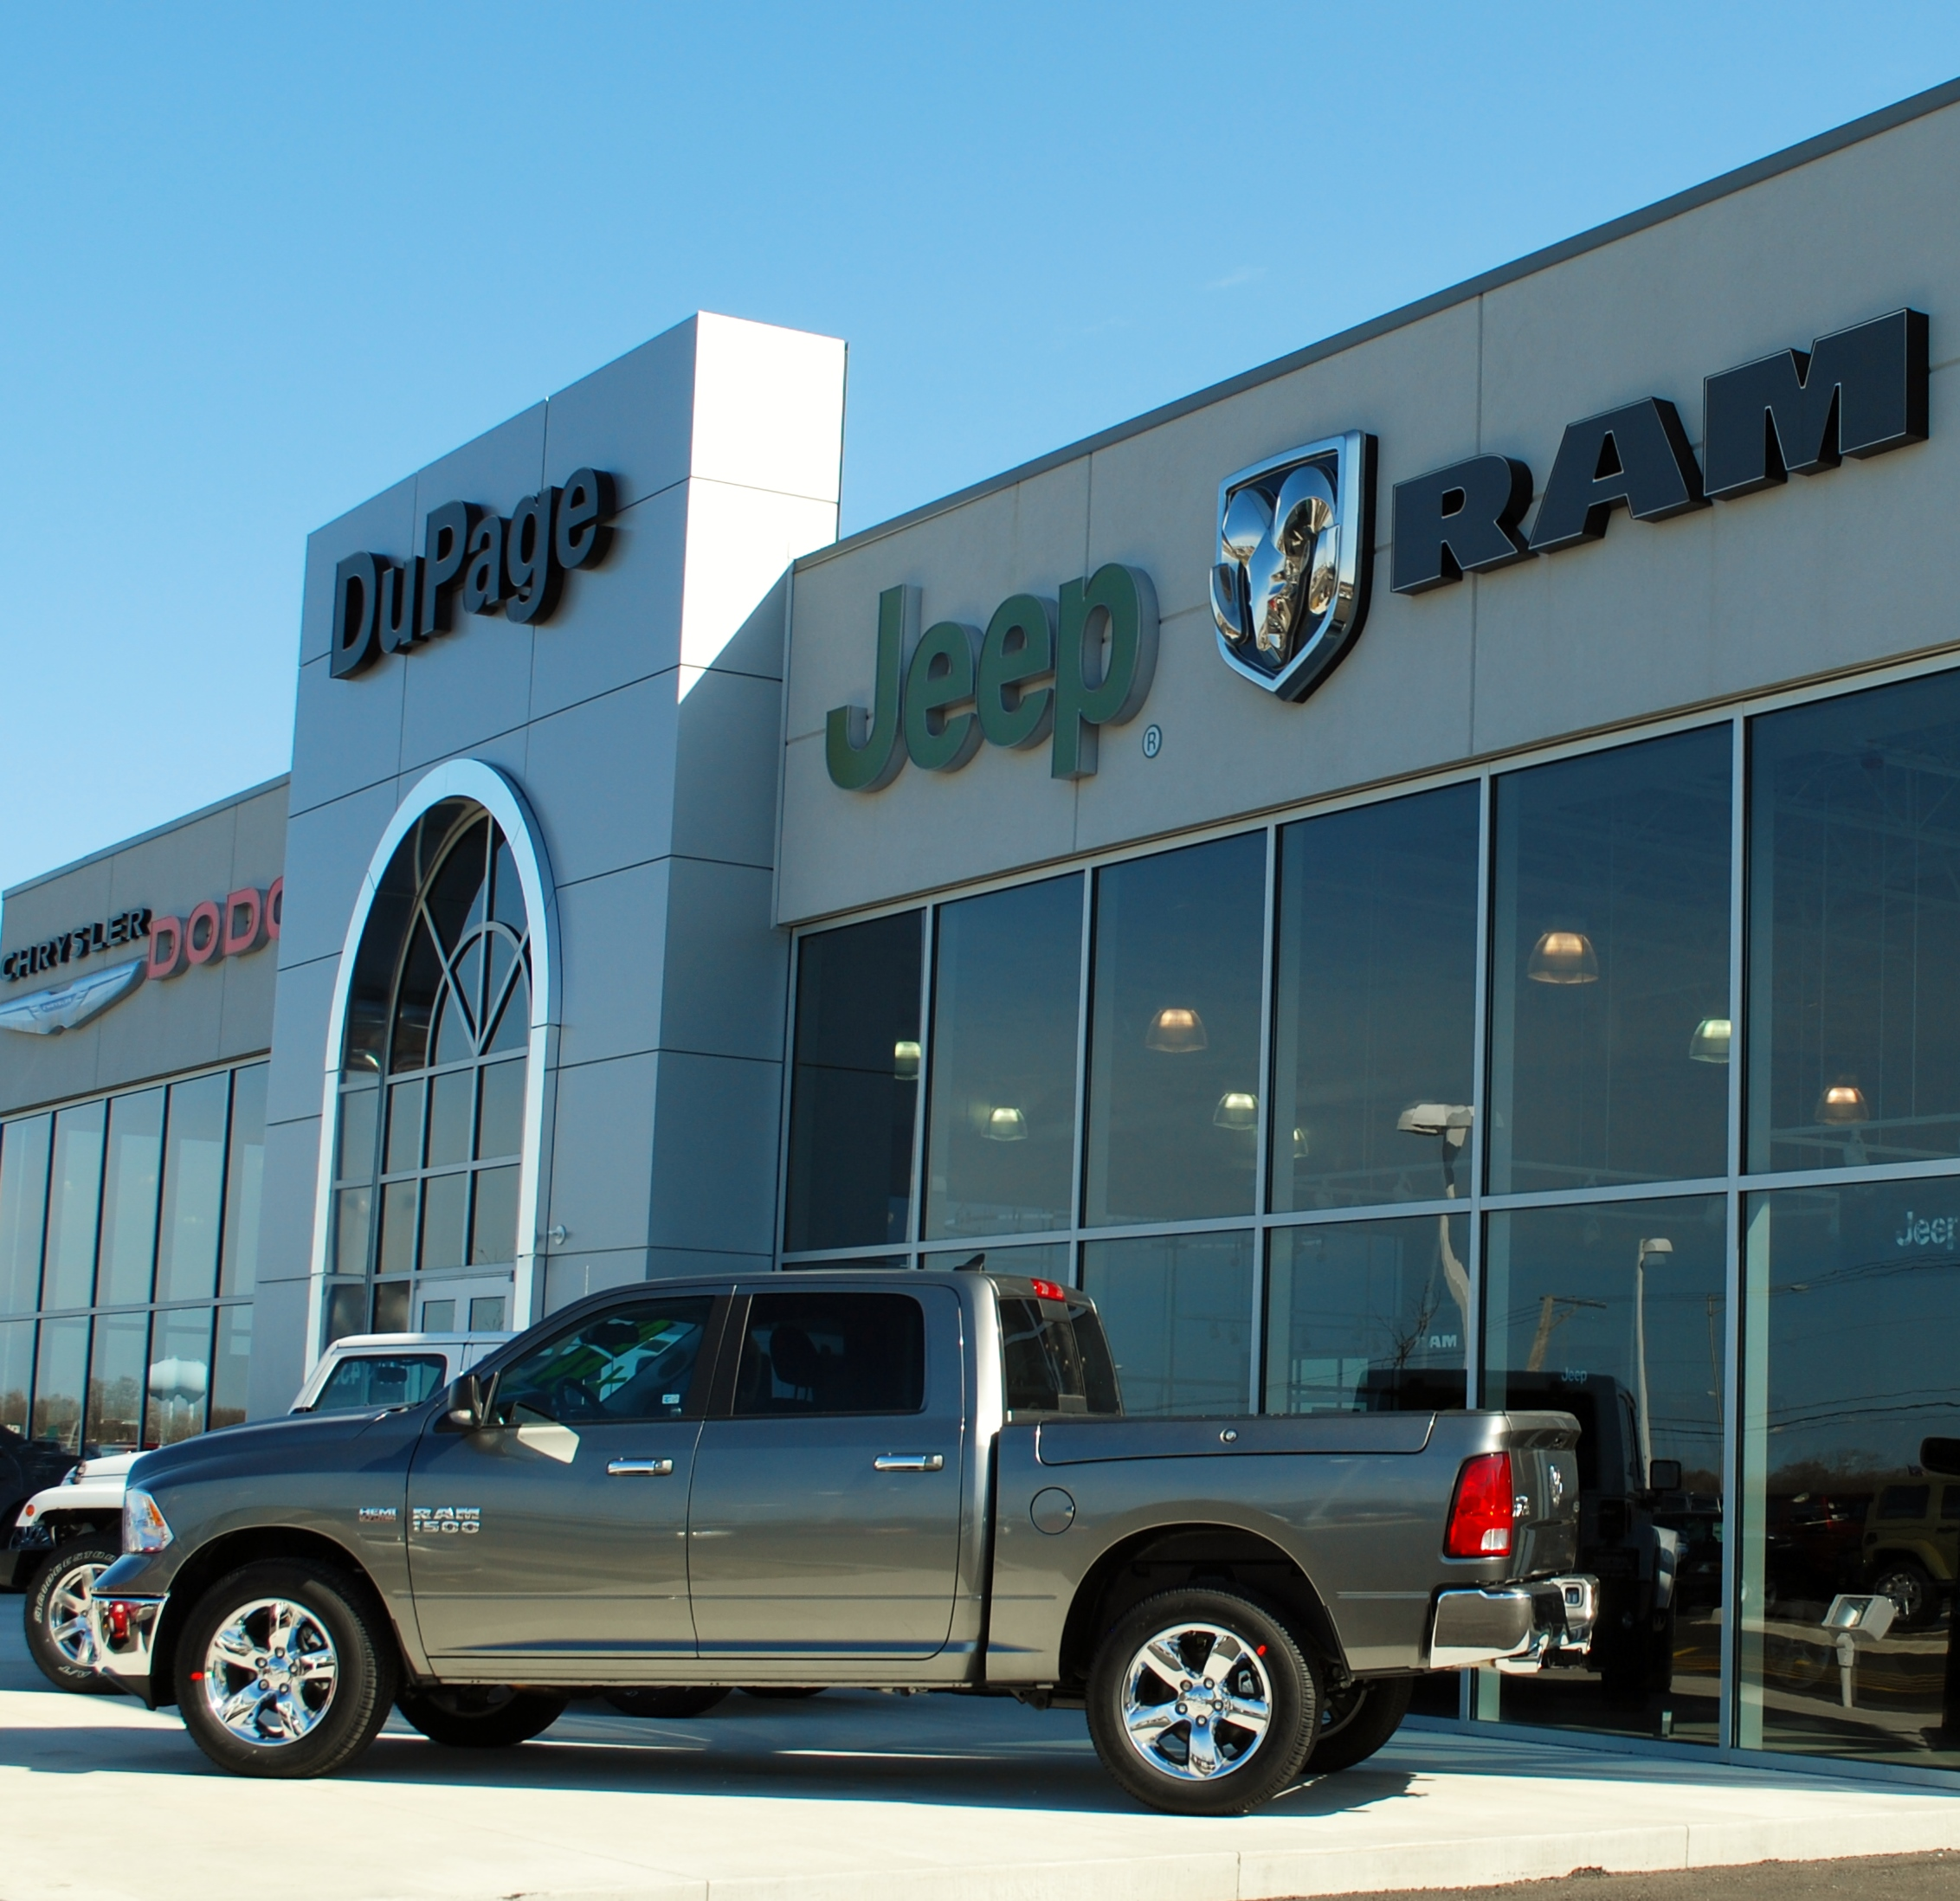 Dupage Dodge Chrysler Jeep In Glendale Heights, IL 60139